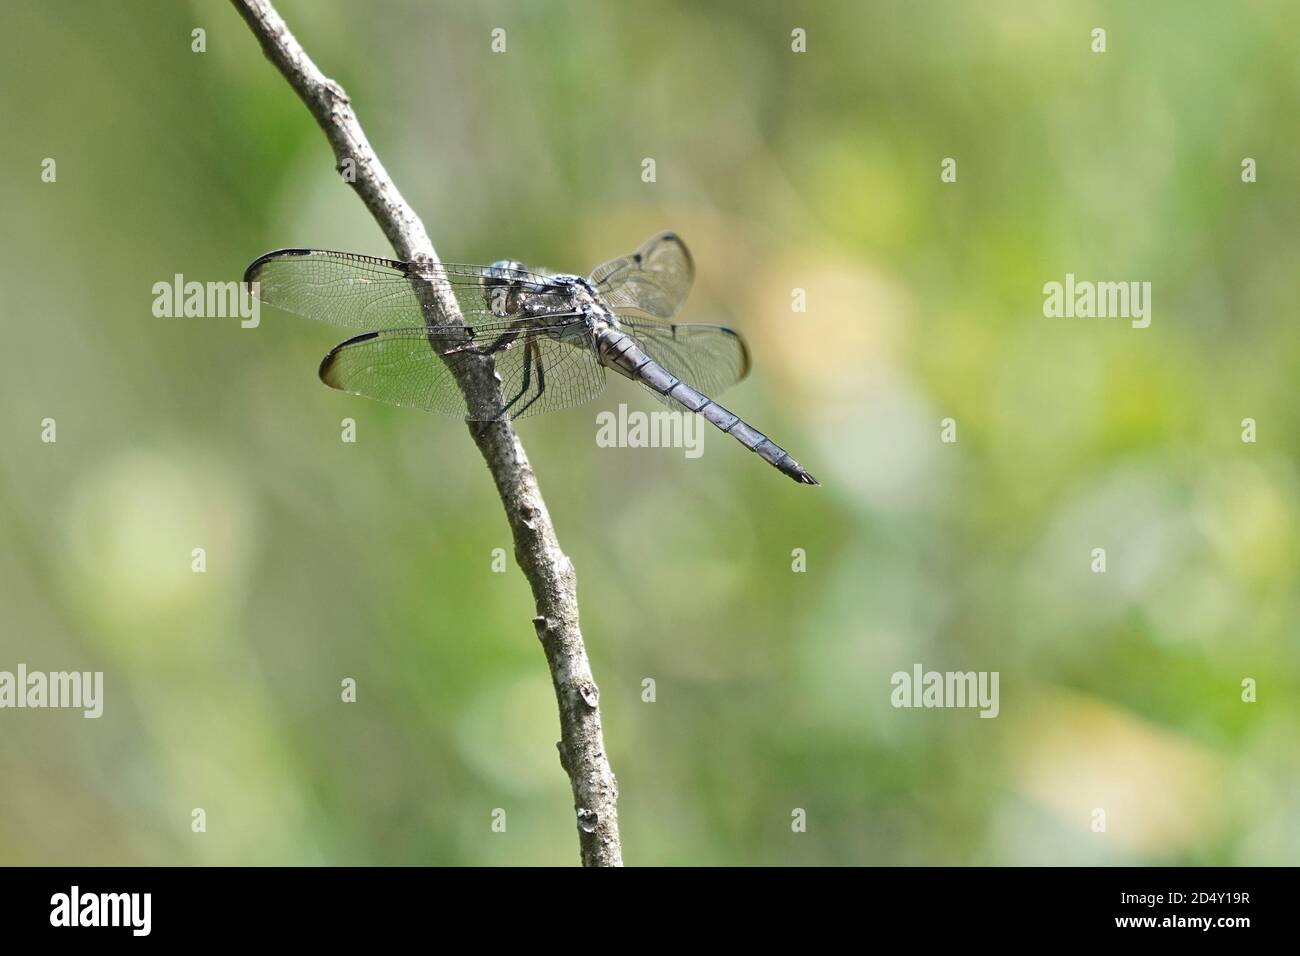 Dragonfly on a plant stem. Stock Photo